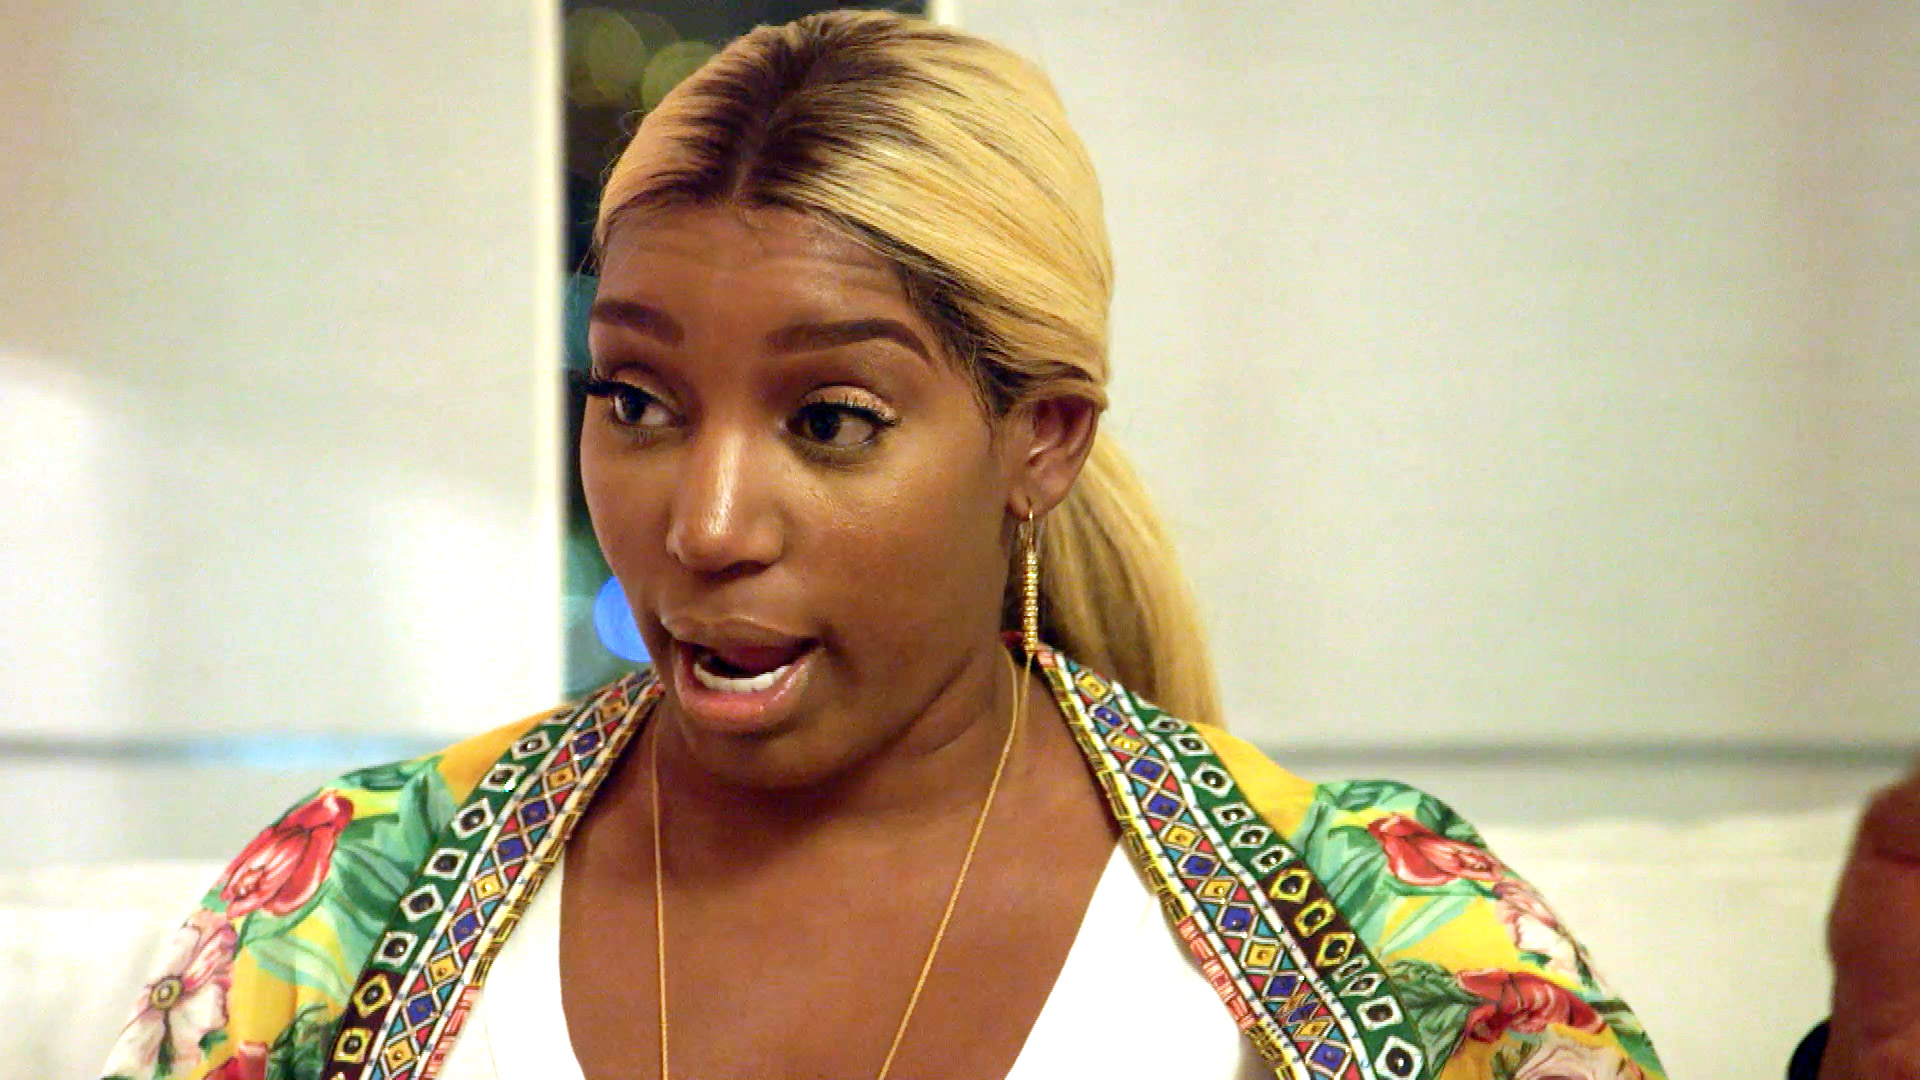 Pictures NeNe Leakes nude photos 2019